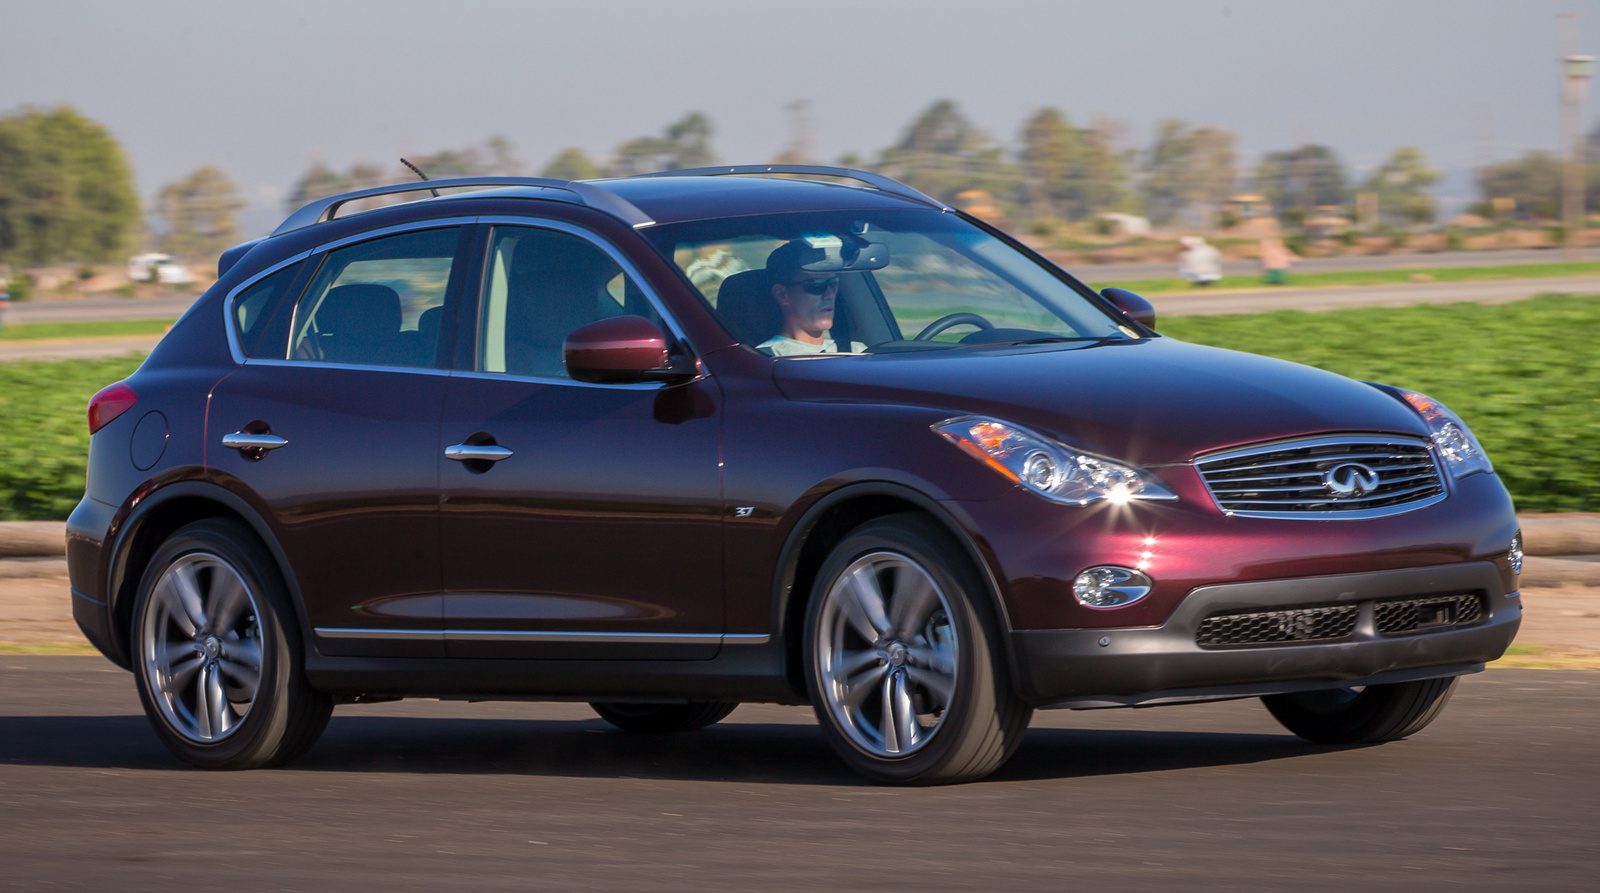 Home / Research / Infiniti / QX50 / 2014